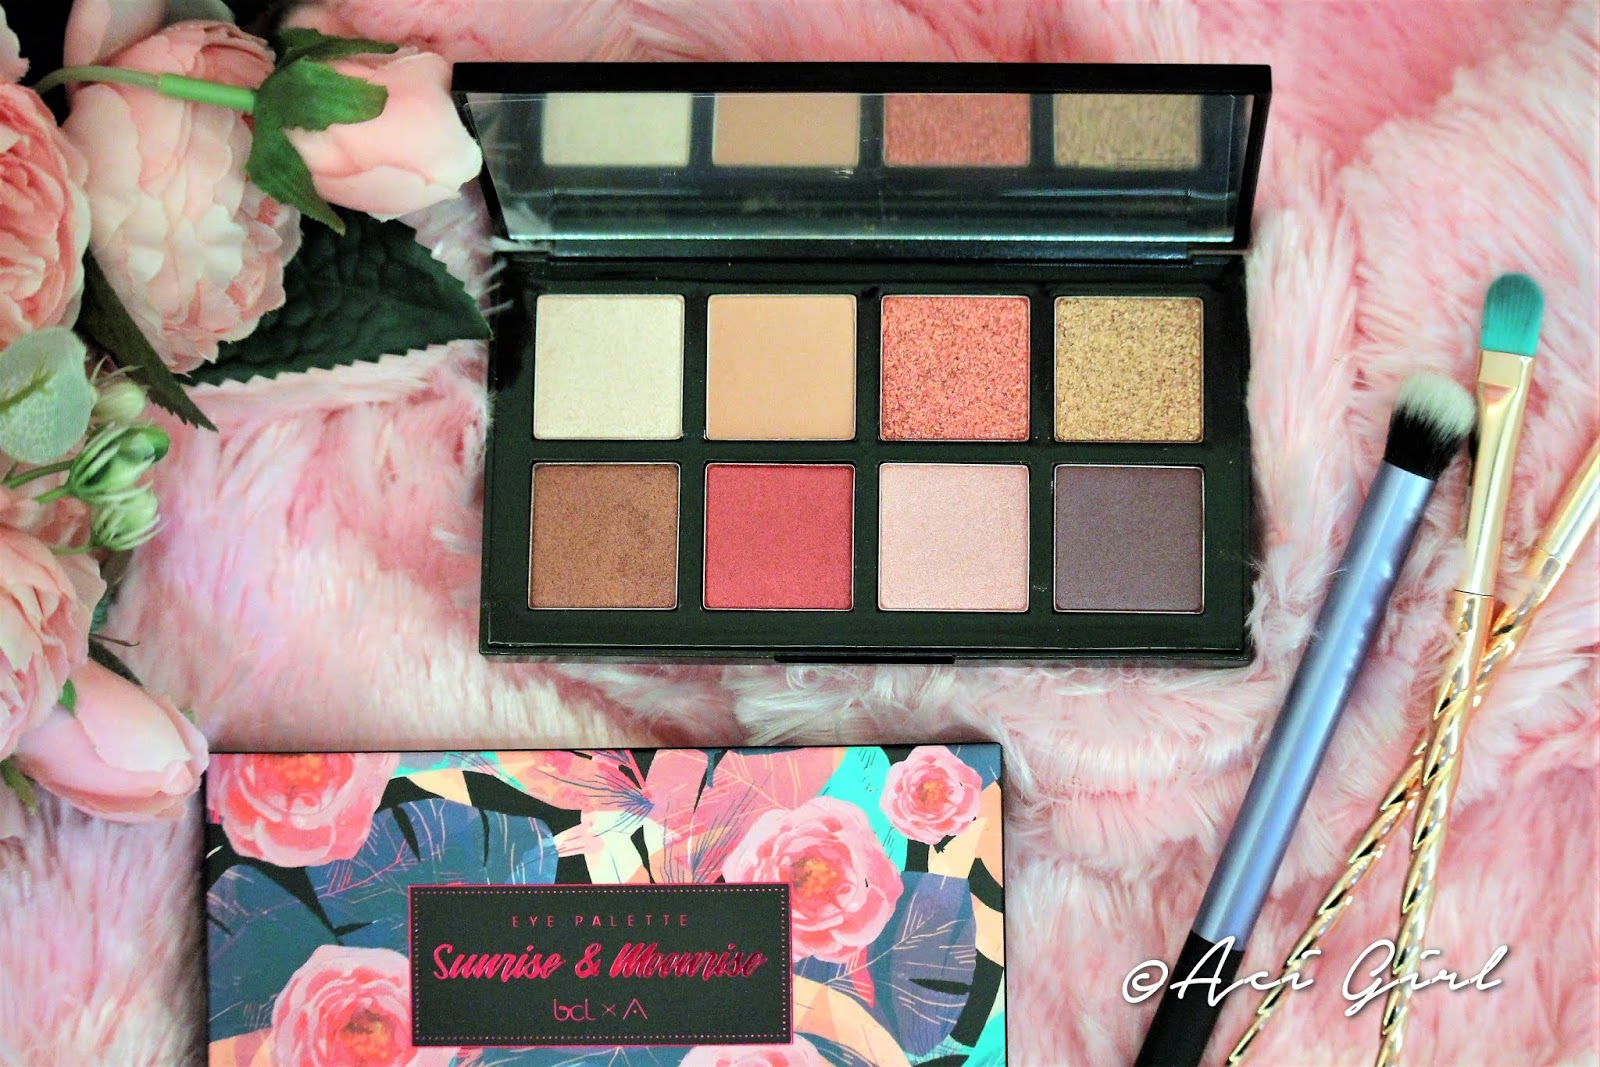 Althea Sunrise and Moonrise Eye Pallete